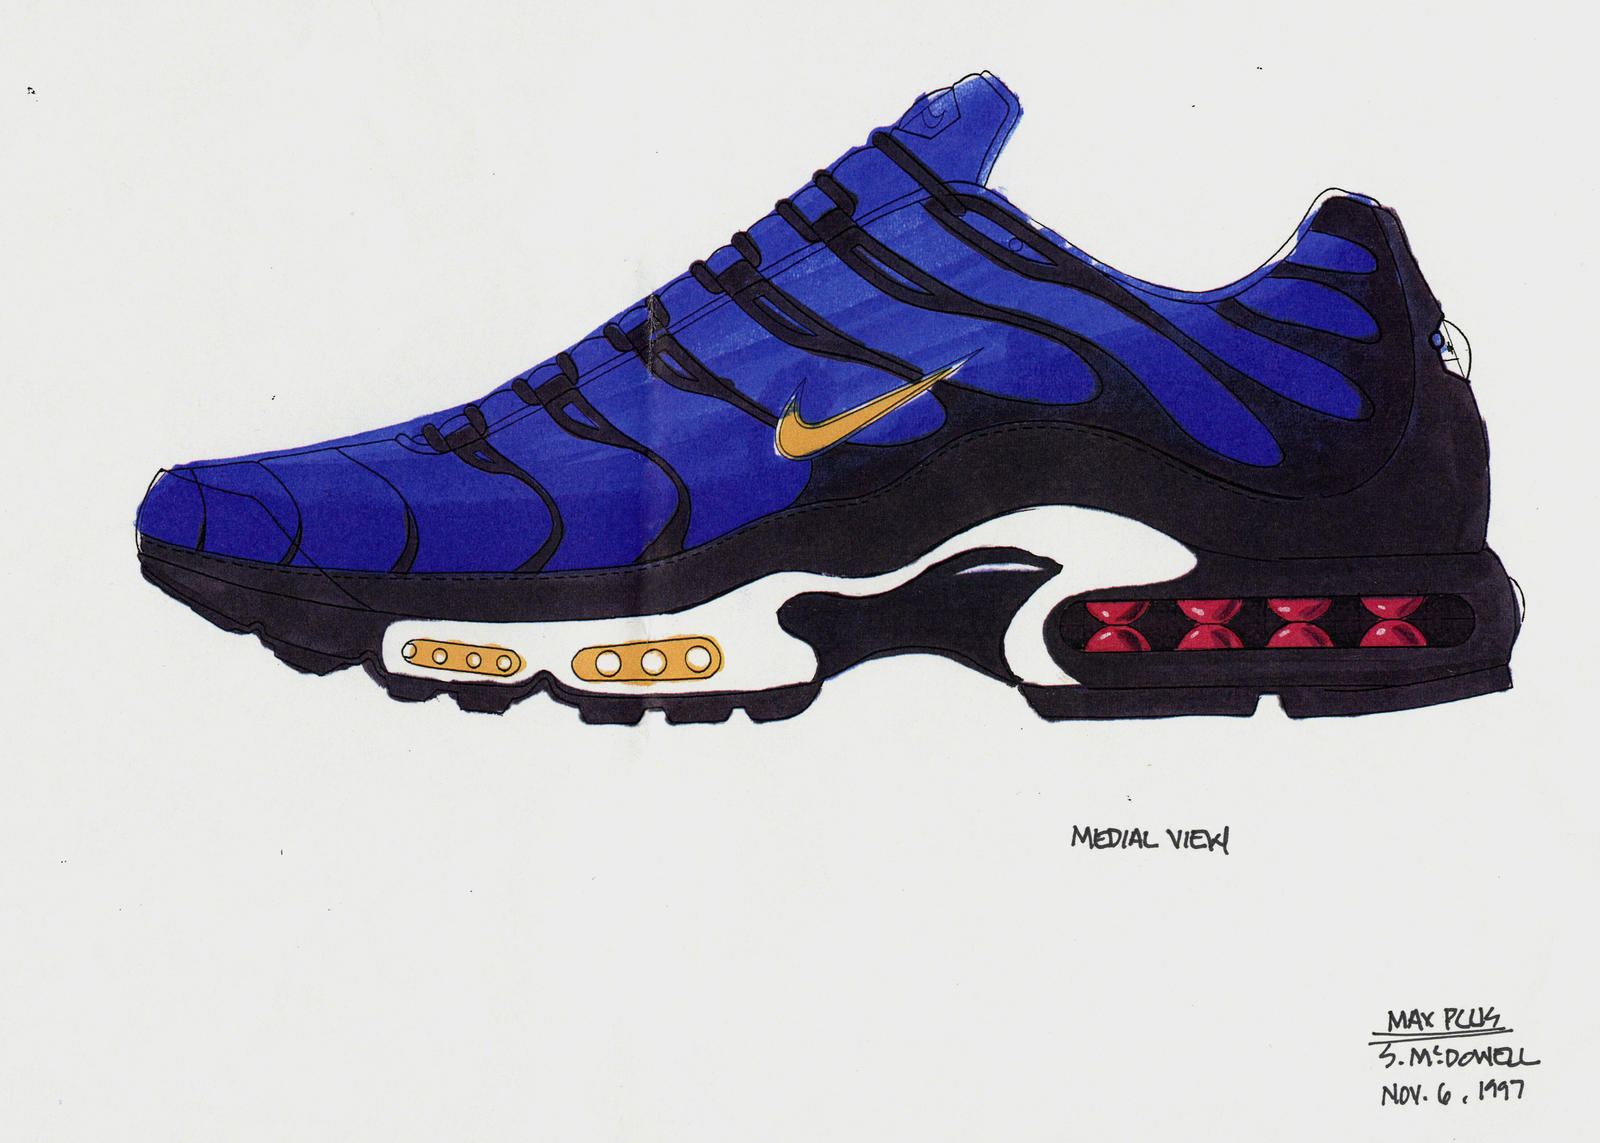 833b16cf5dbe The Untold Story of the Nike Air Max Plus - Nike News